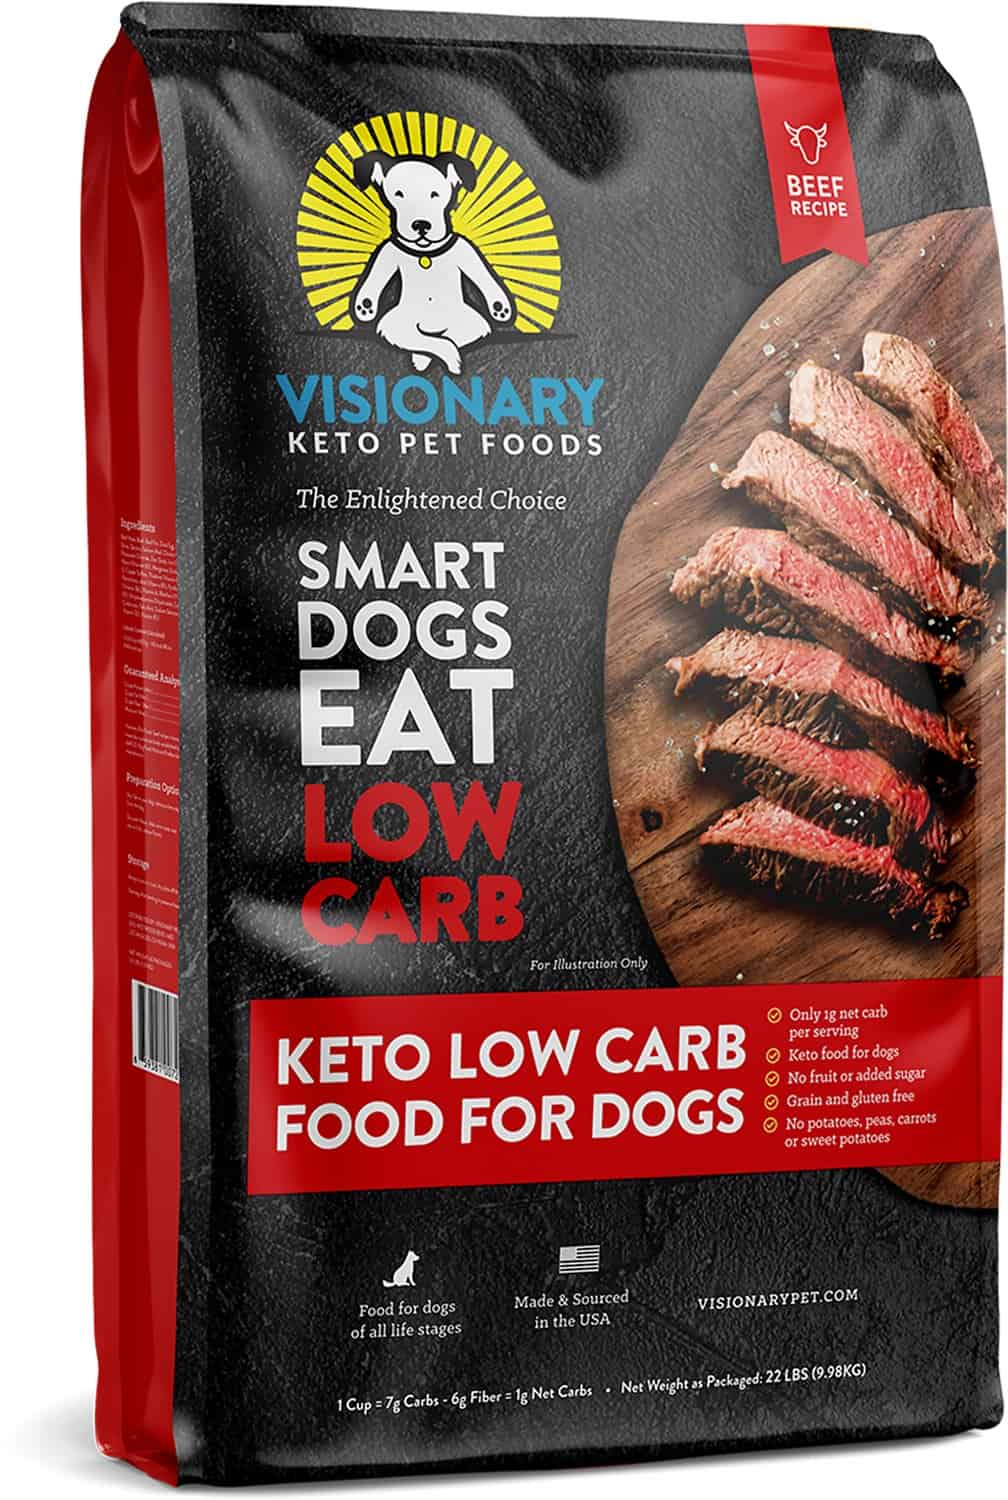 Valiant Dog Food (Now Visionary): [year] Reviews & Coupons 11